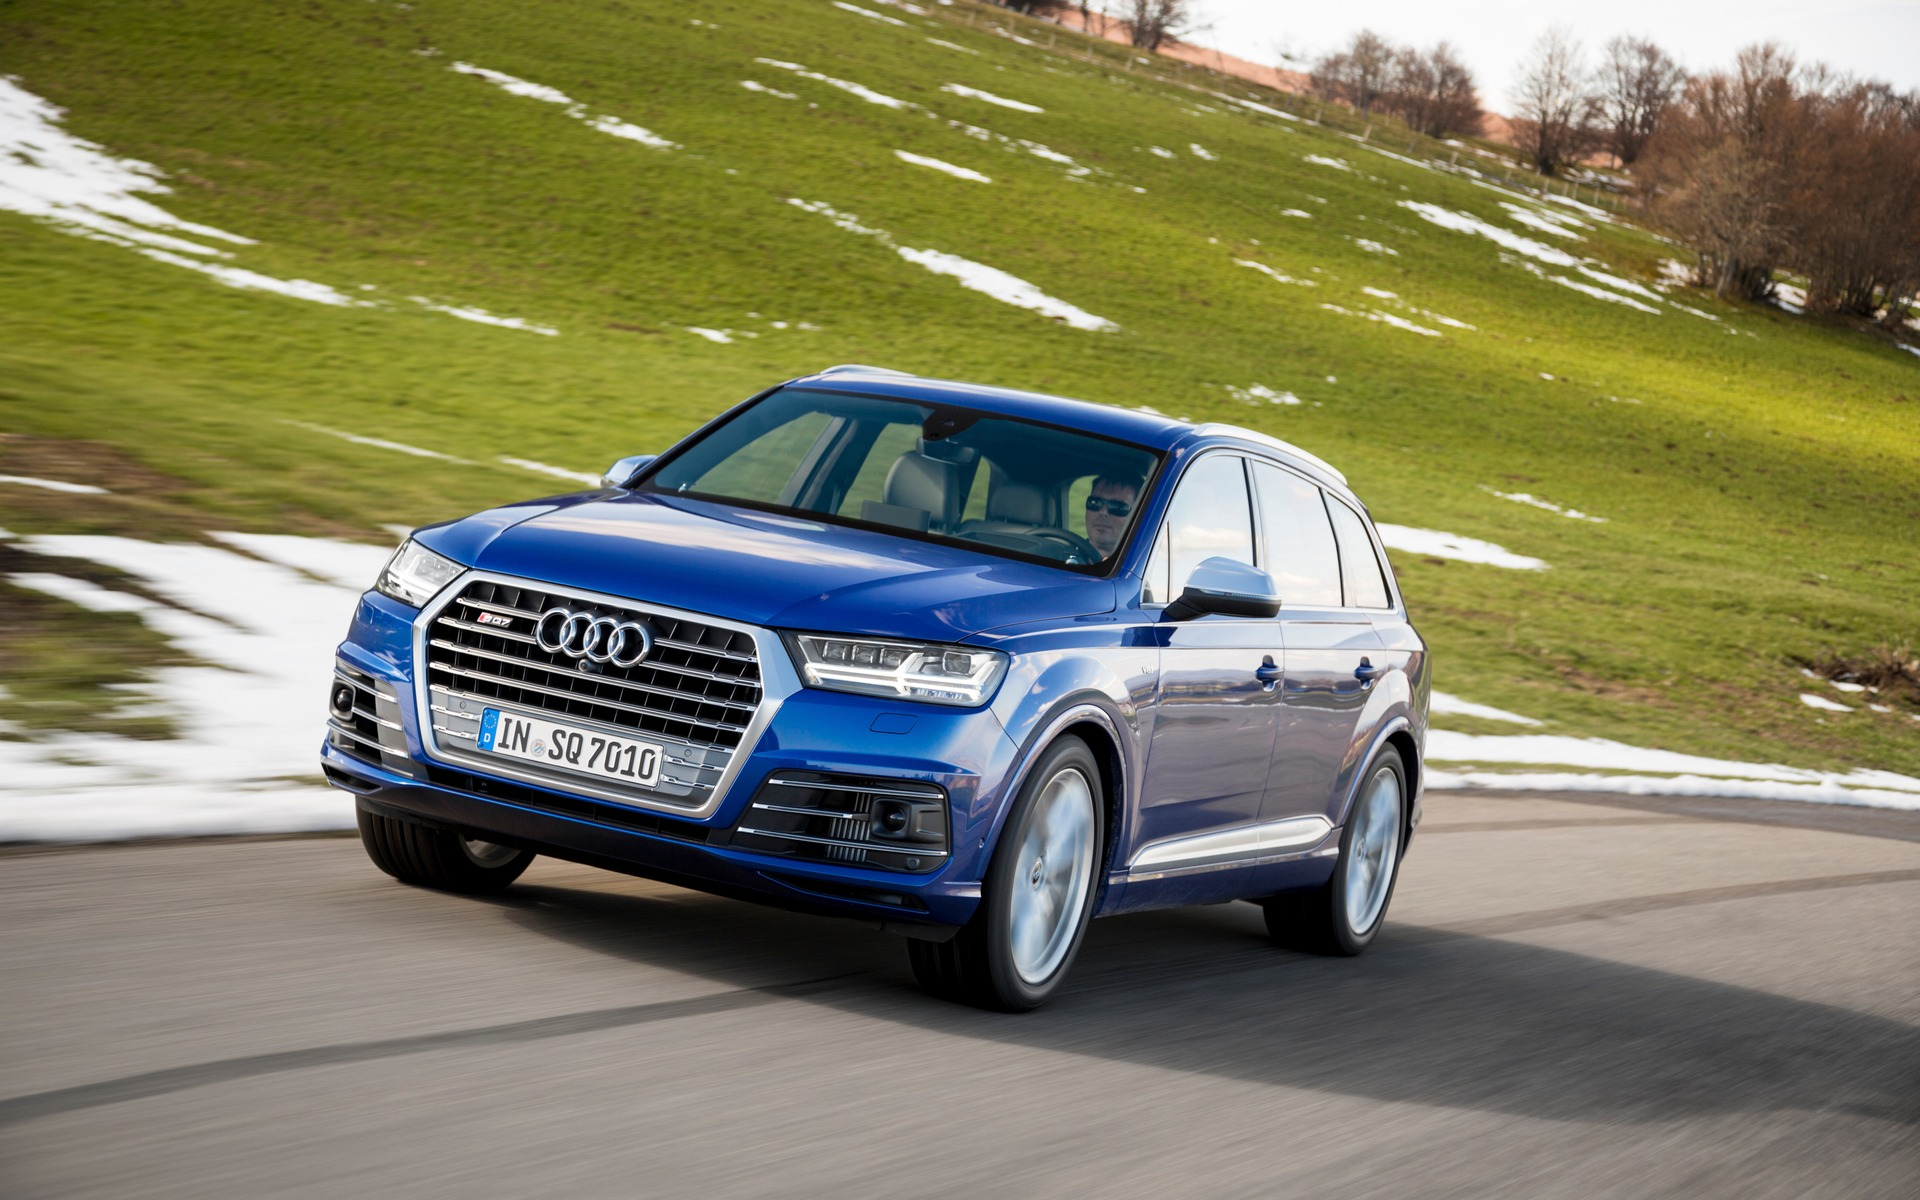 Audi SQ TDI The Most Powerful Of All Diesel SUVs The Car Guide - Audi diesel